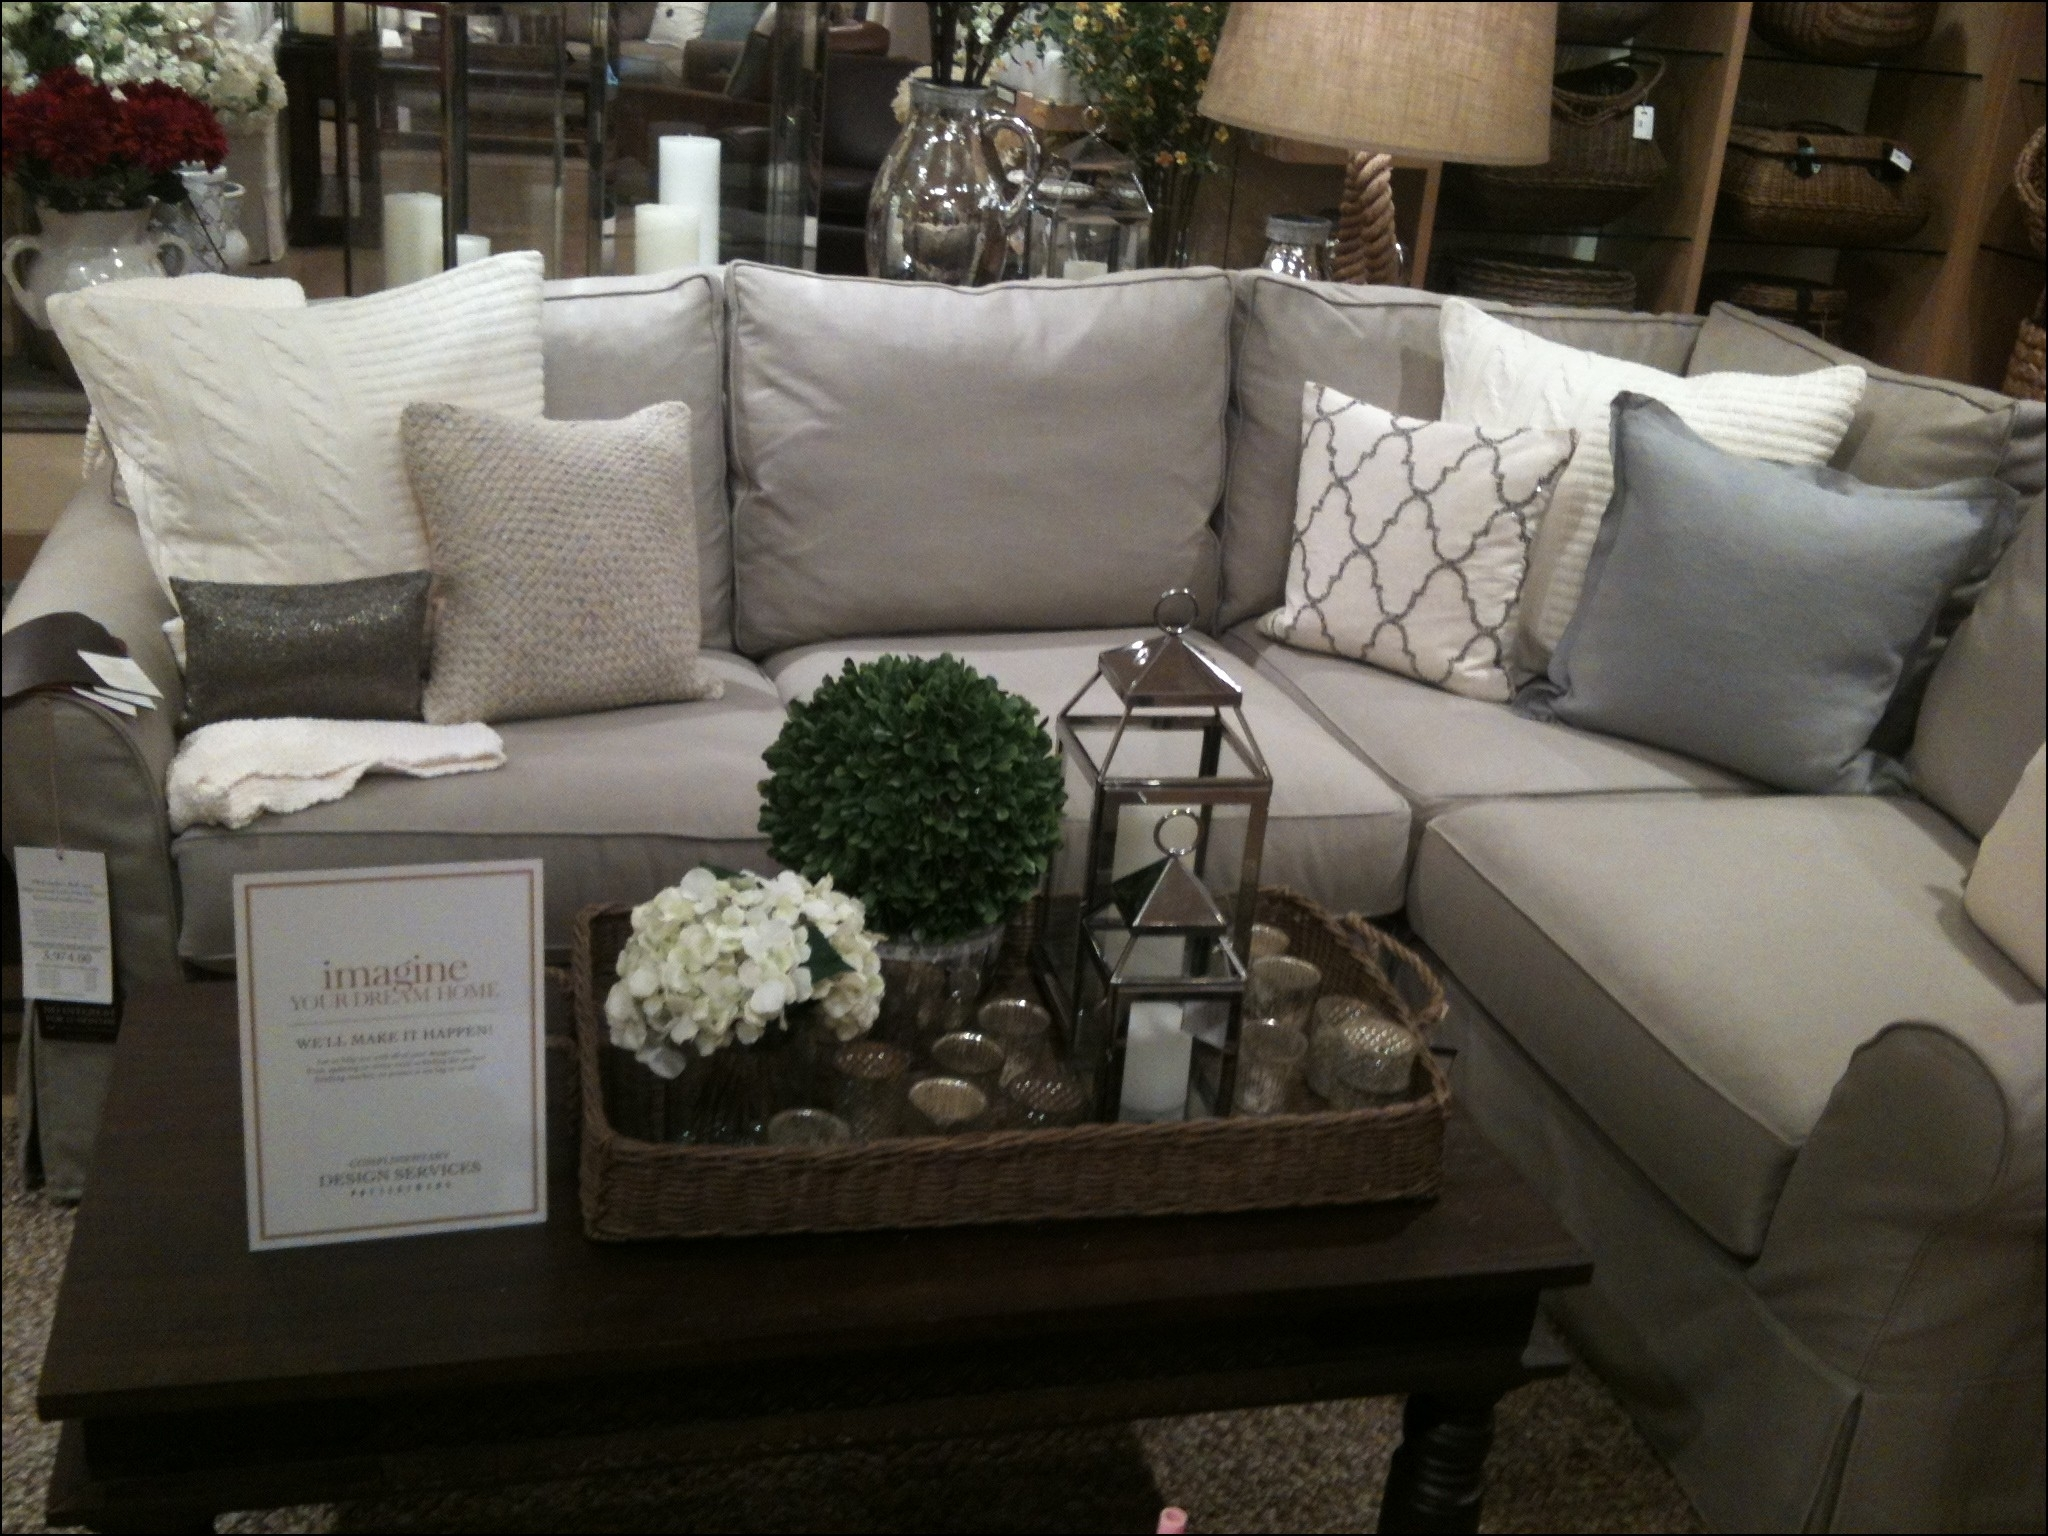 Sectional Sofas Pottery Barn | Decorating Ideas | Pinterest Pertaining To Pottery Barn Sectional Sofas (View 2 of 10)